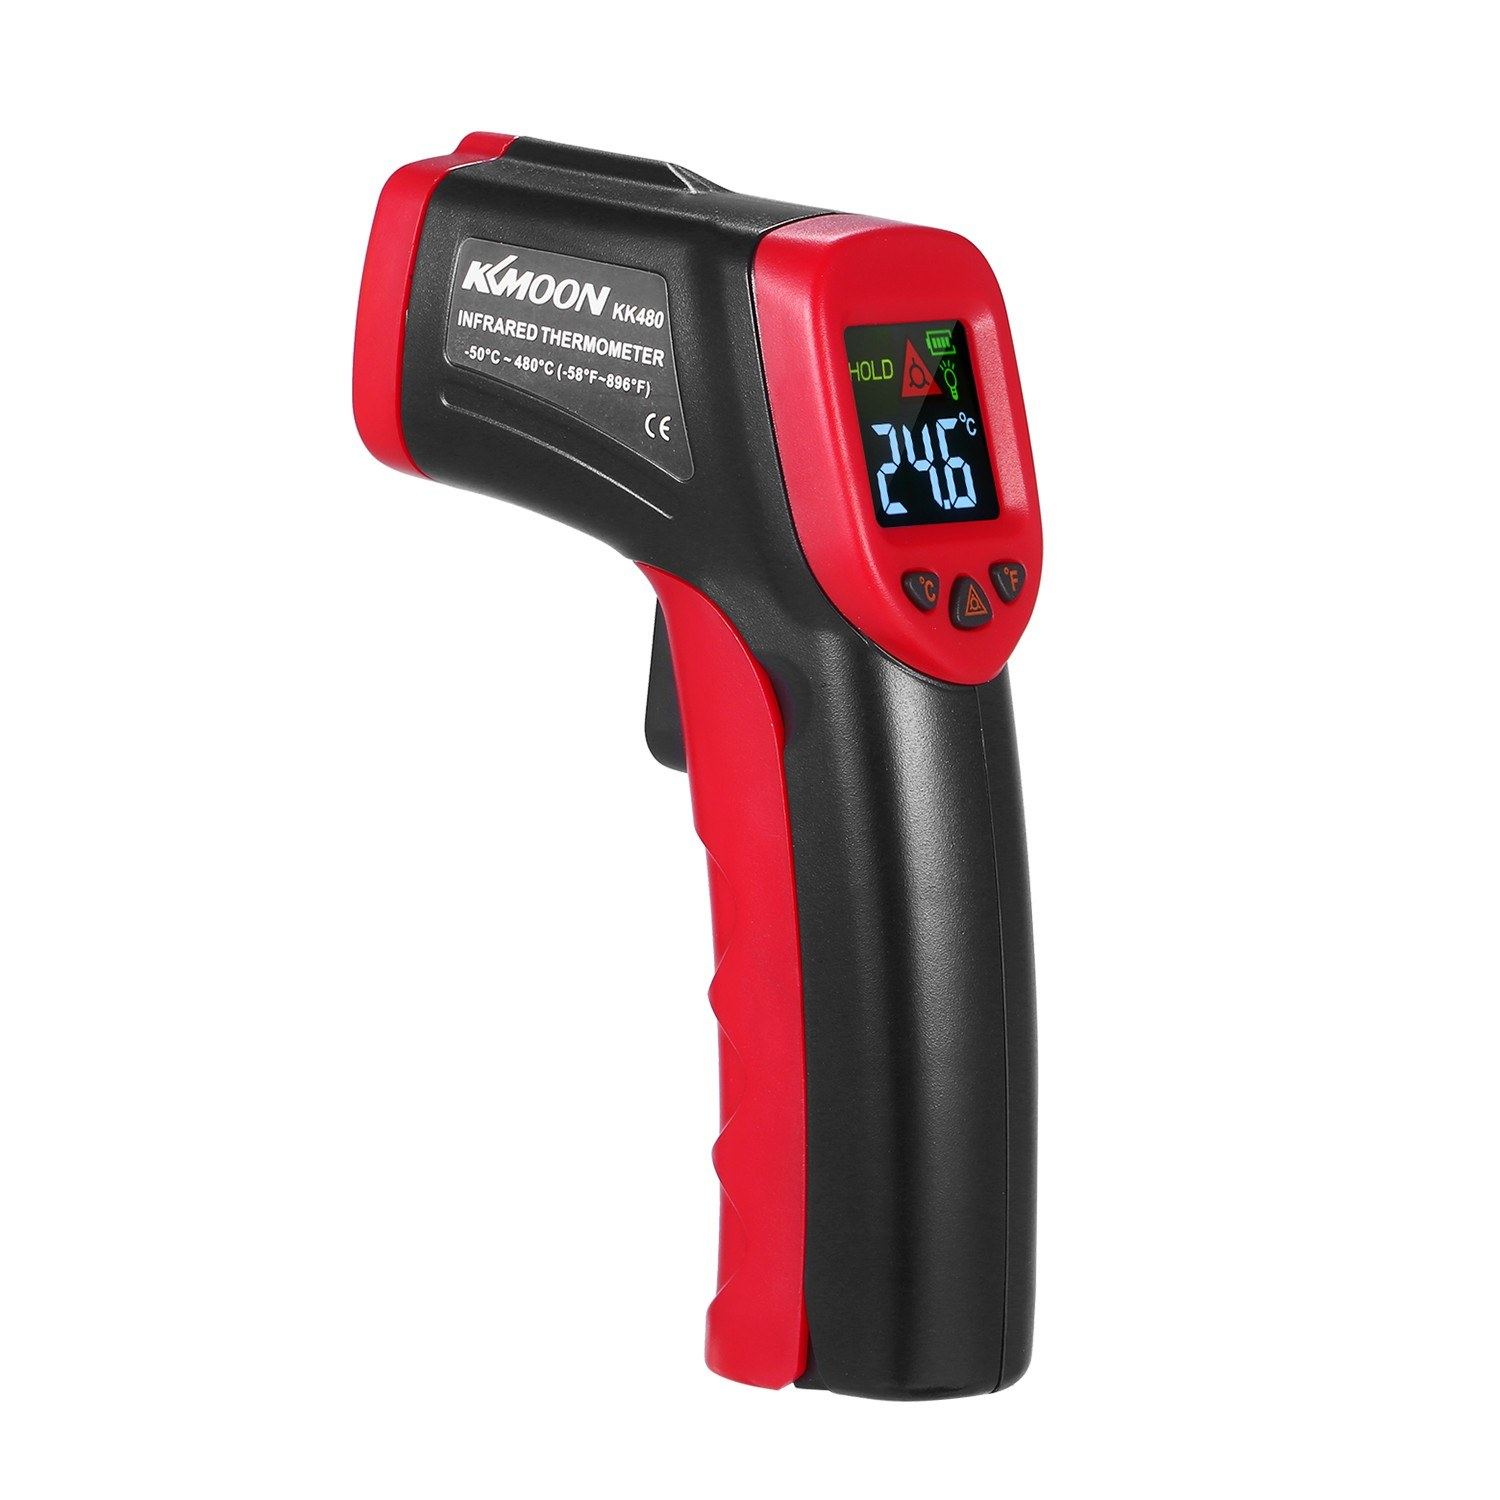 KKmoon -50uff5e480u2103 12:1 Handheld Digital Non-contact IR Thermometer Temperature Tester Pyrometer Industrial Infrared Thermometer